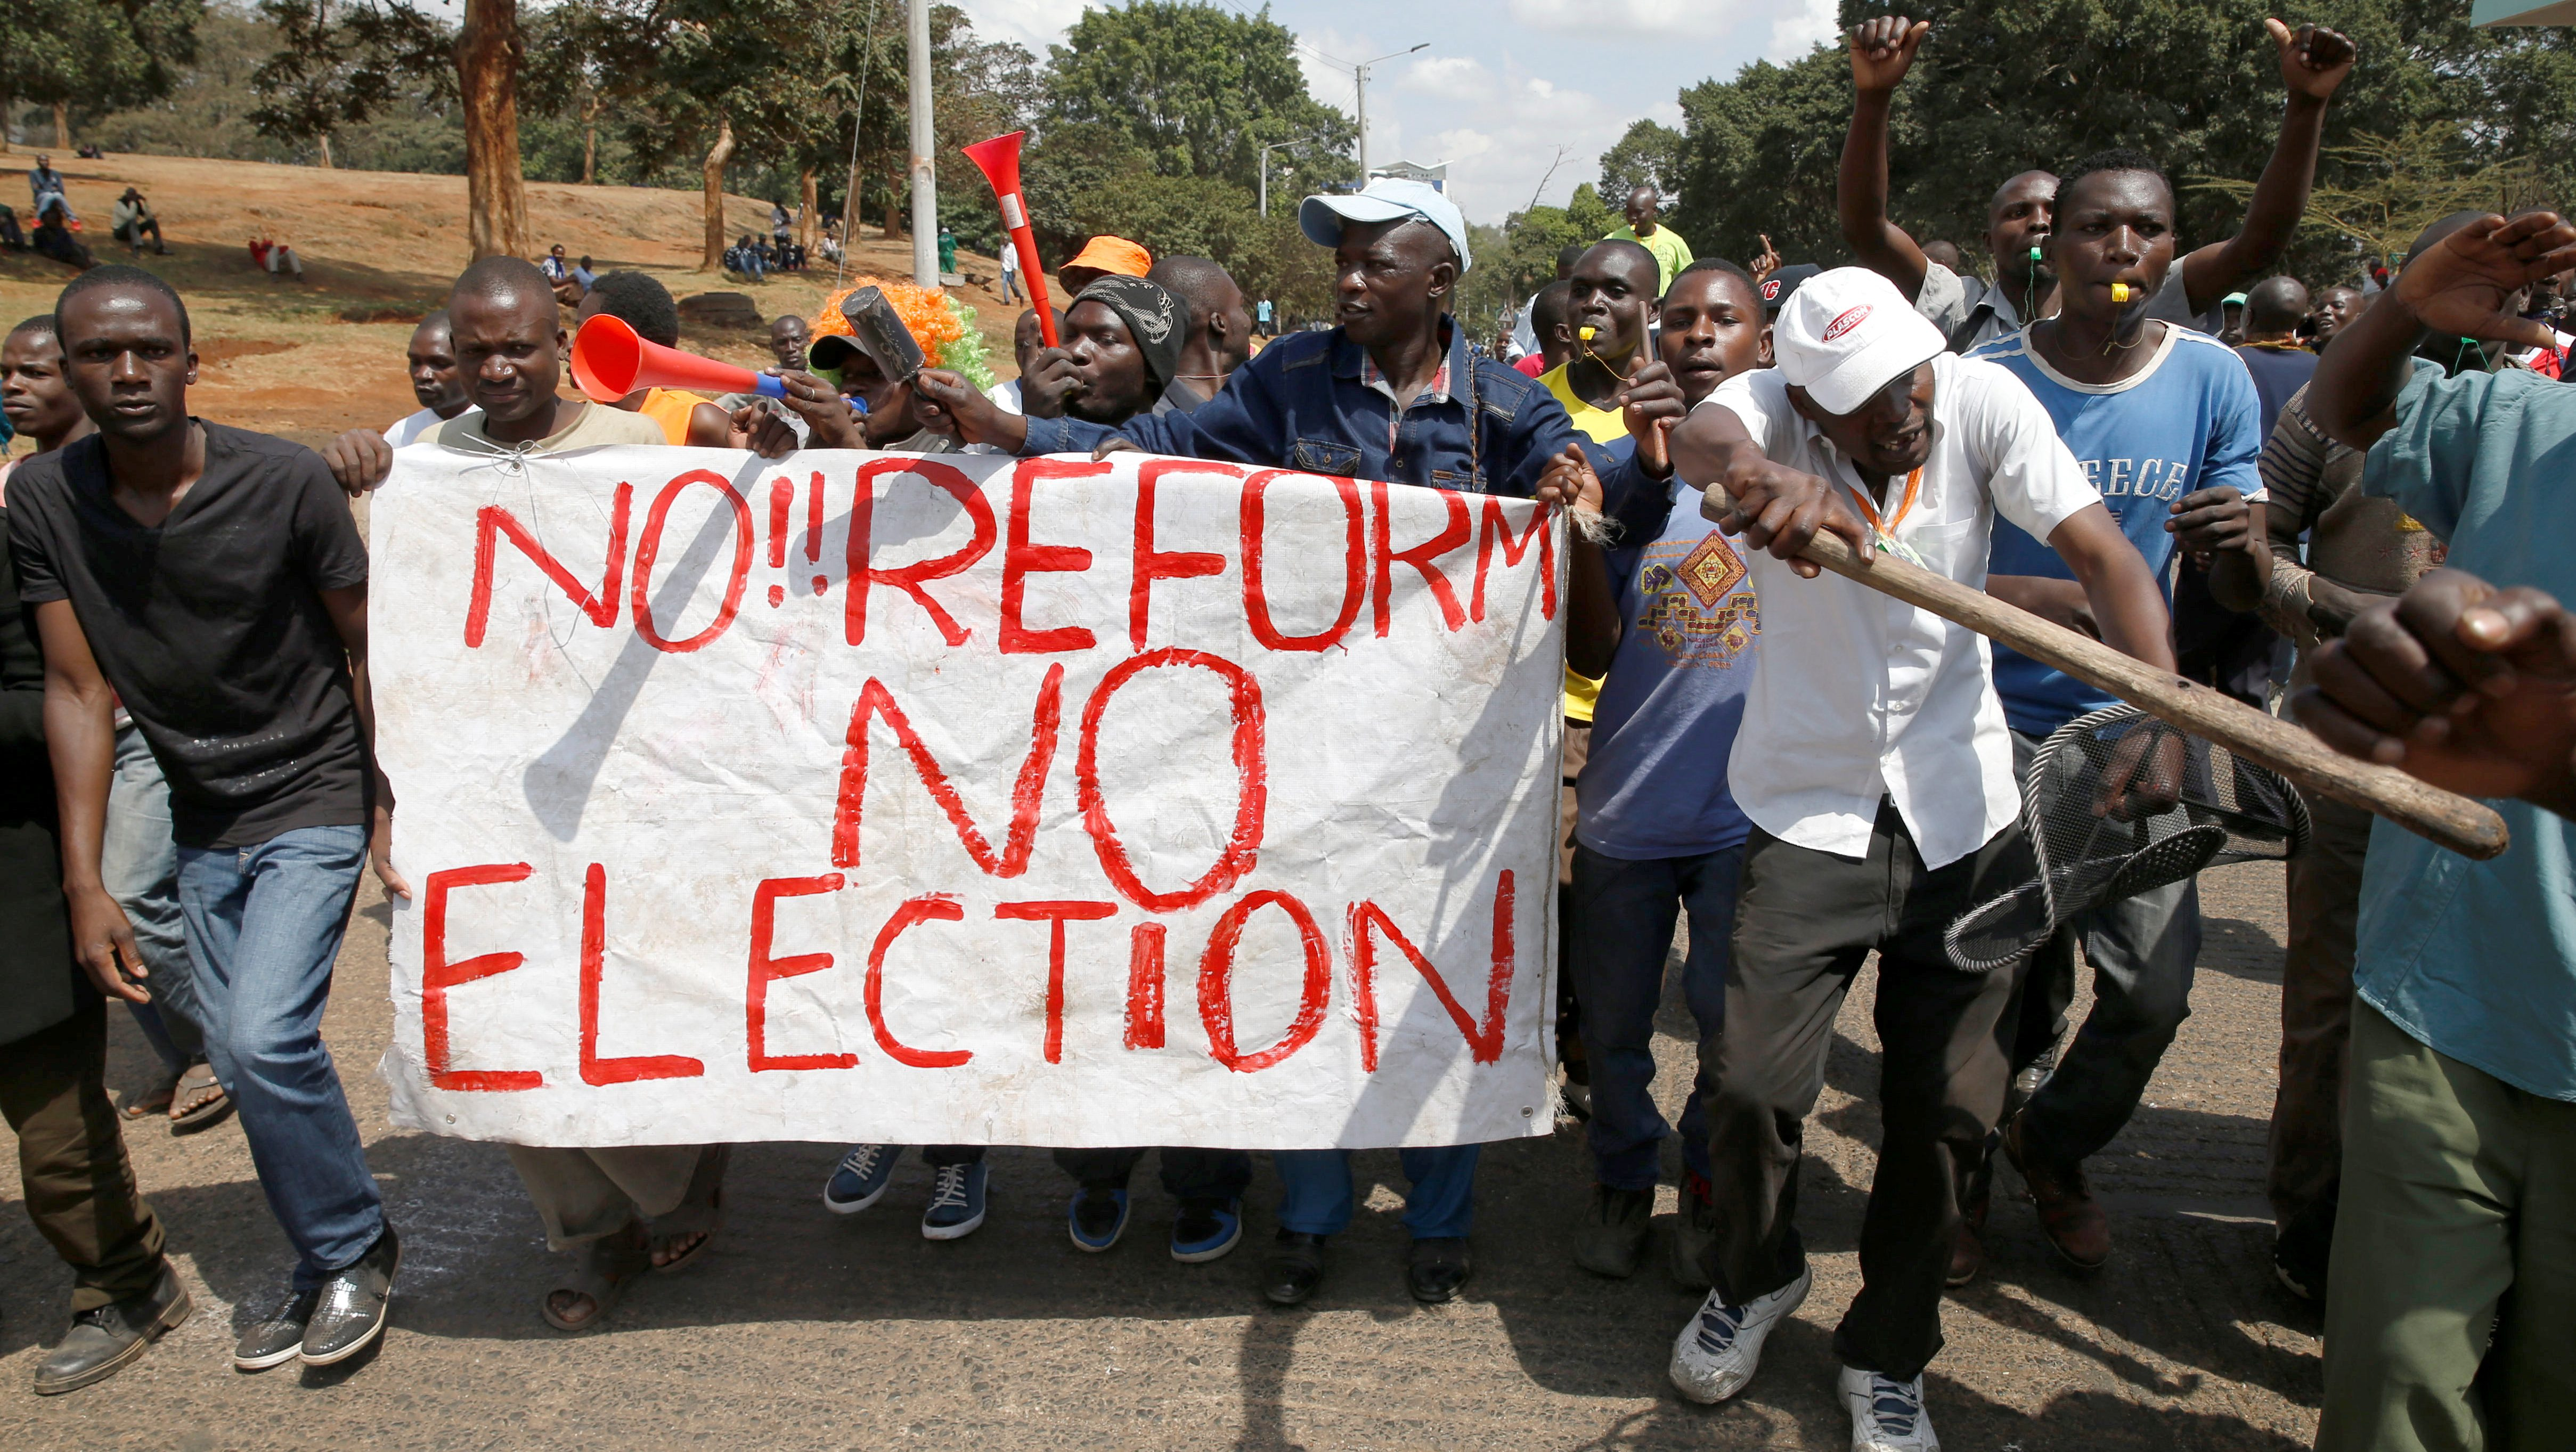 Supporters of Kenyan opposition National Super Alliance (NASA) coalition, carry a banner as they demonstrate in Nairobi, Kenya, October 11, 2017.